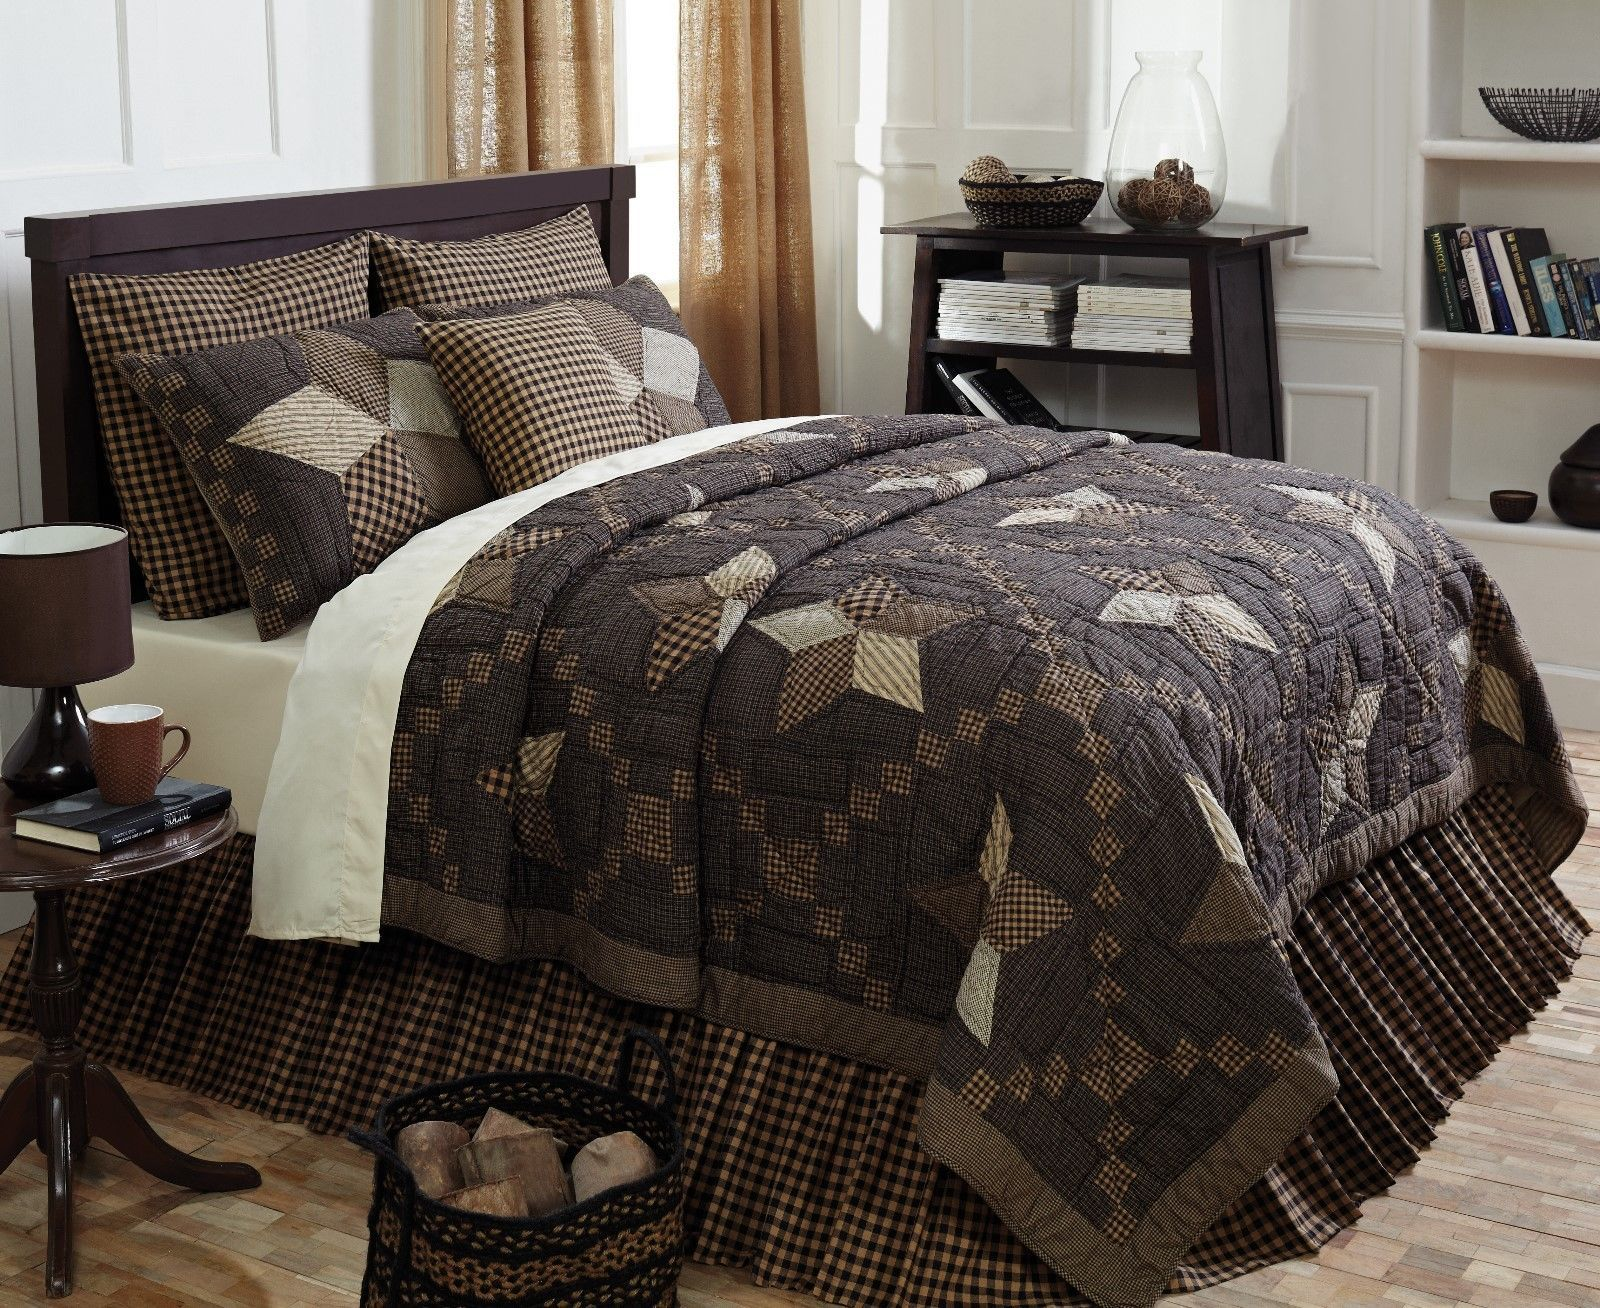 3-pc Queen - FARMHOUSE STAR Quilt and Shams Set - Black and Tan - VHC Brands